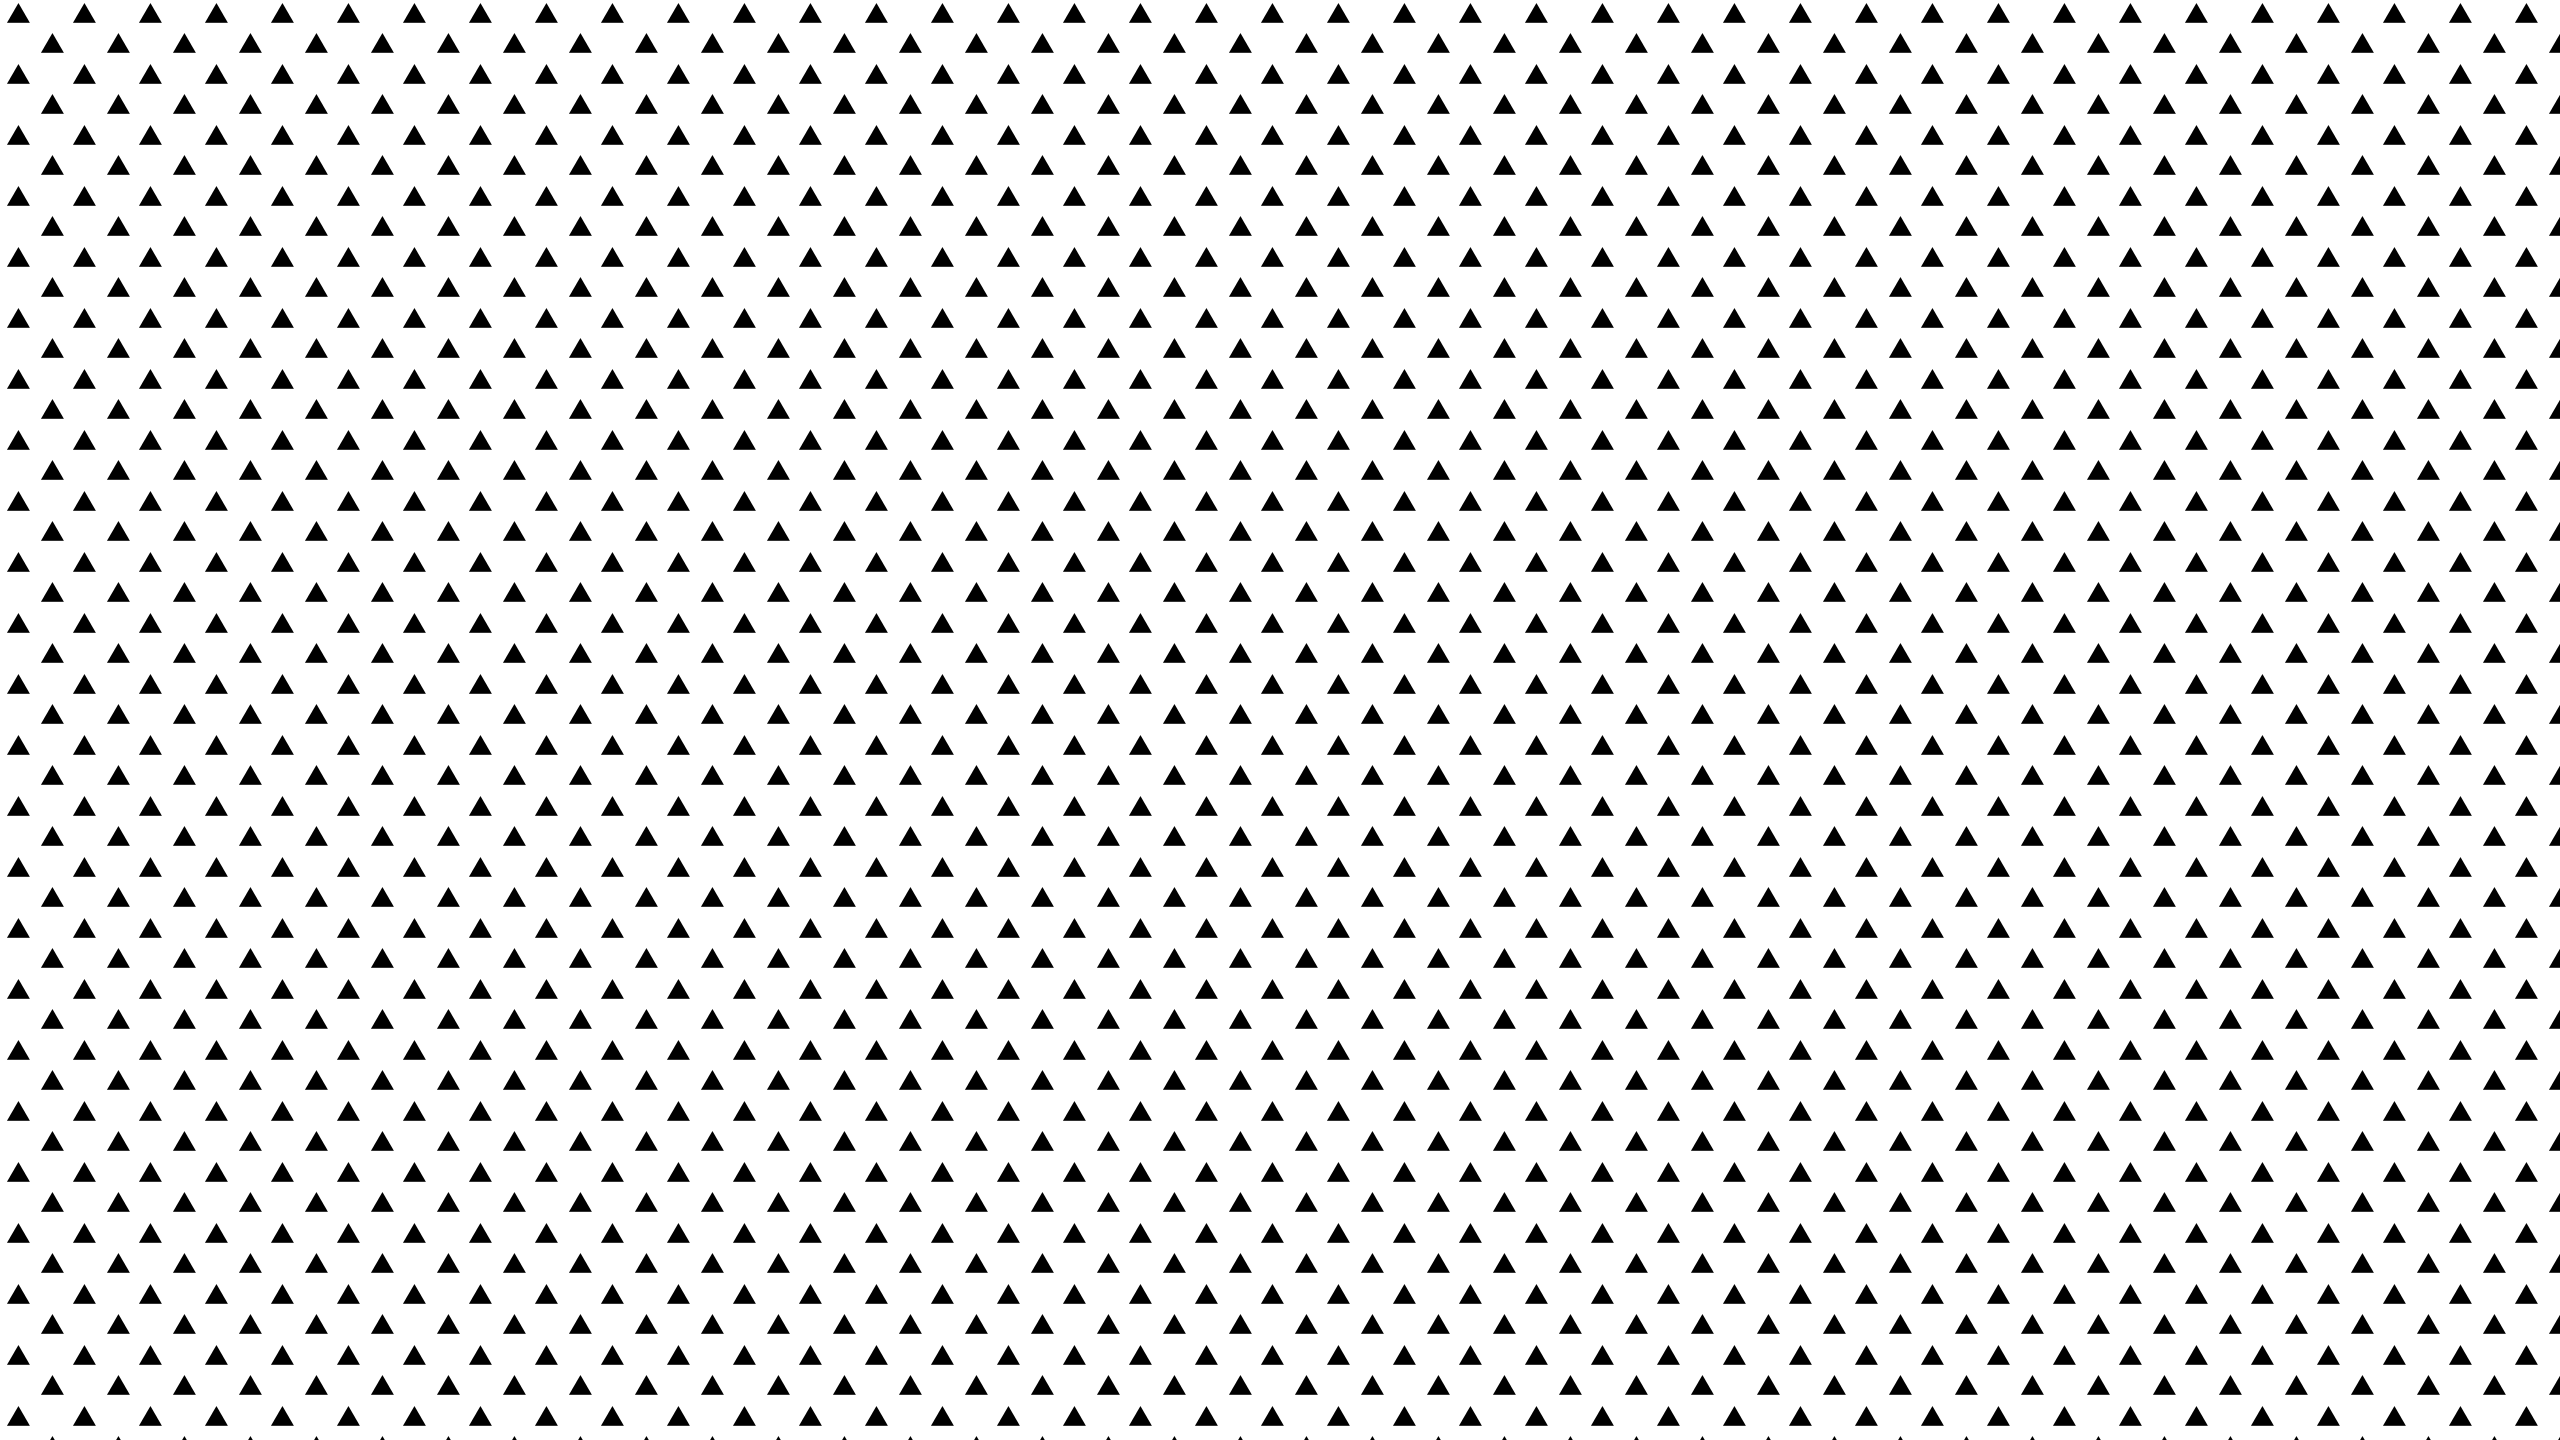 Triangle Pattern Free Vector Art  16335 Free Downloads